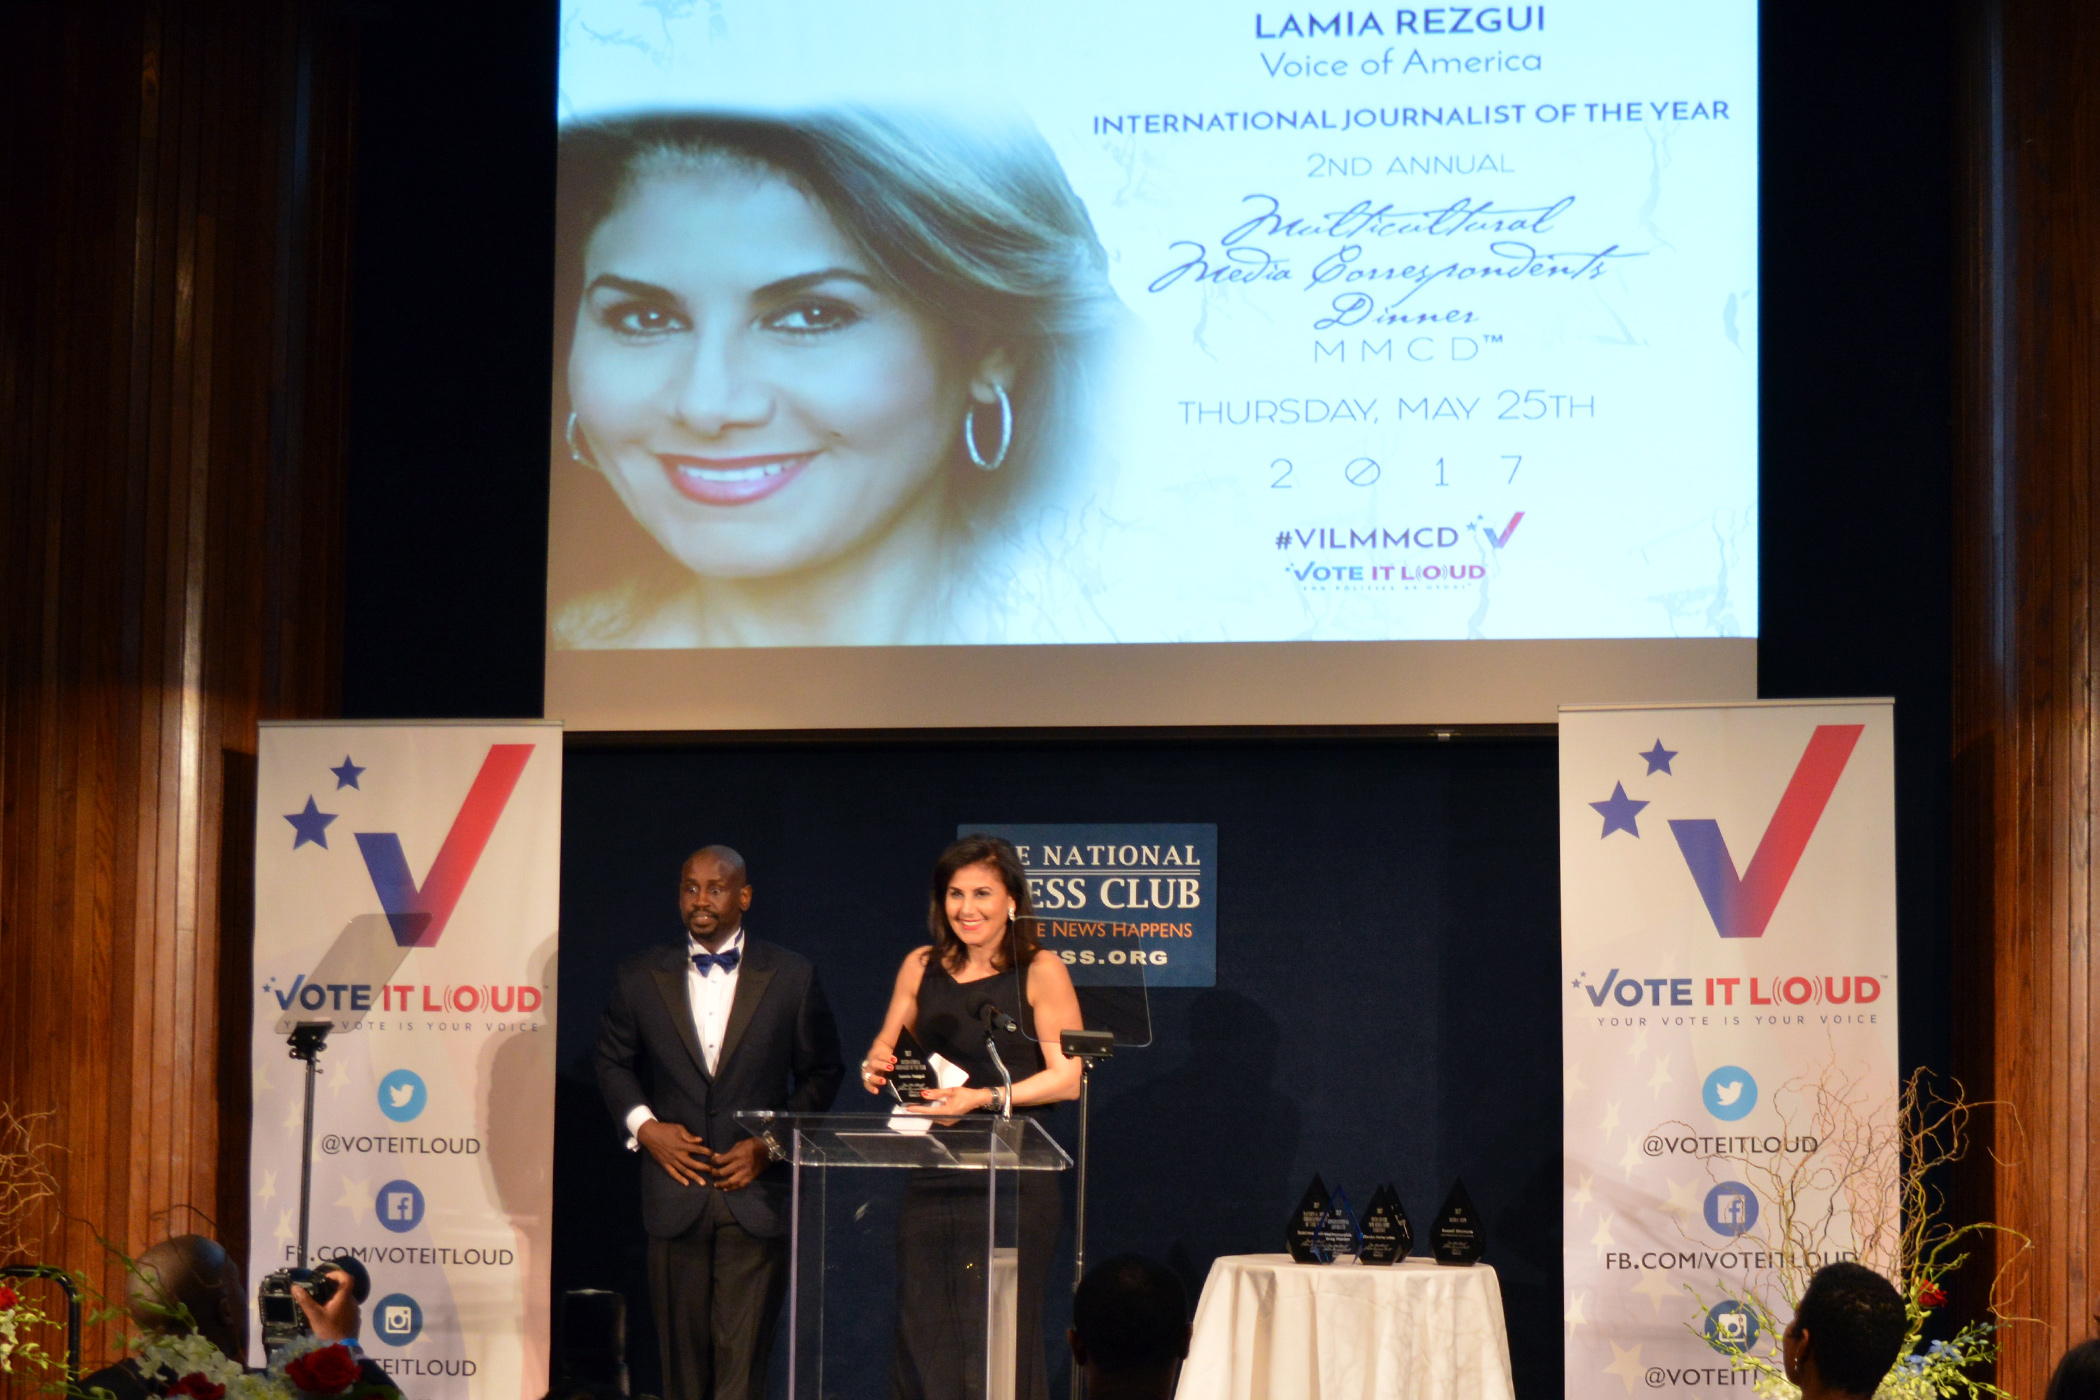 A woman in a black dress holds an award statuette while standing at a podium on a stage next to a black man in a tuxedo